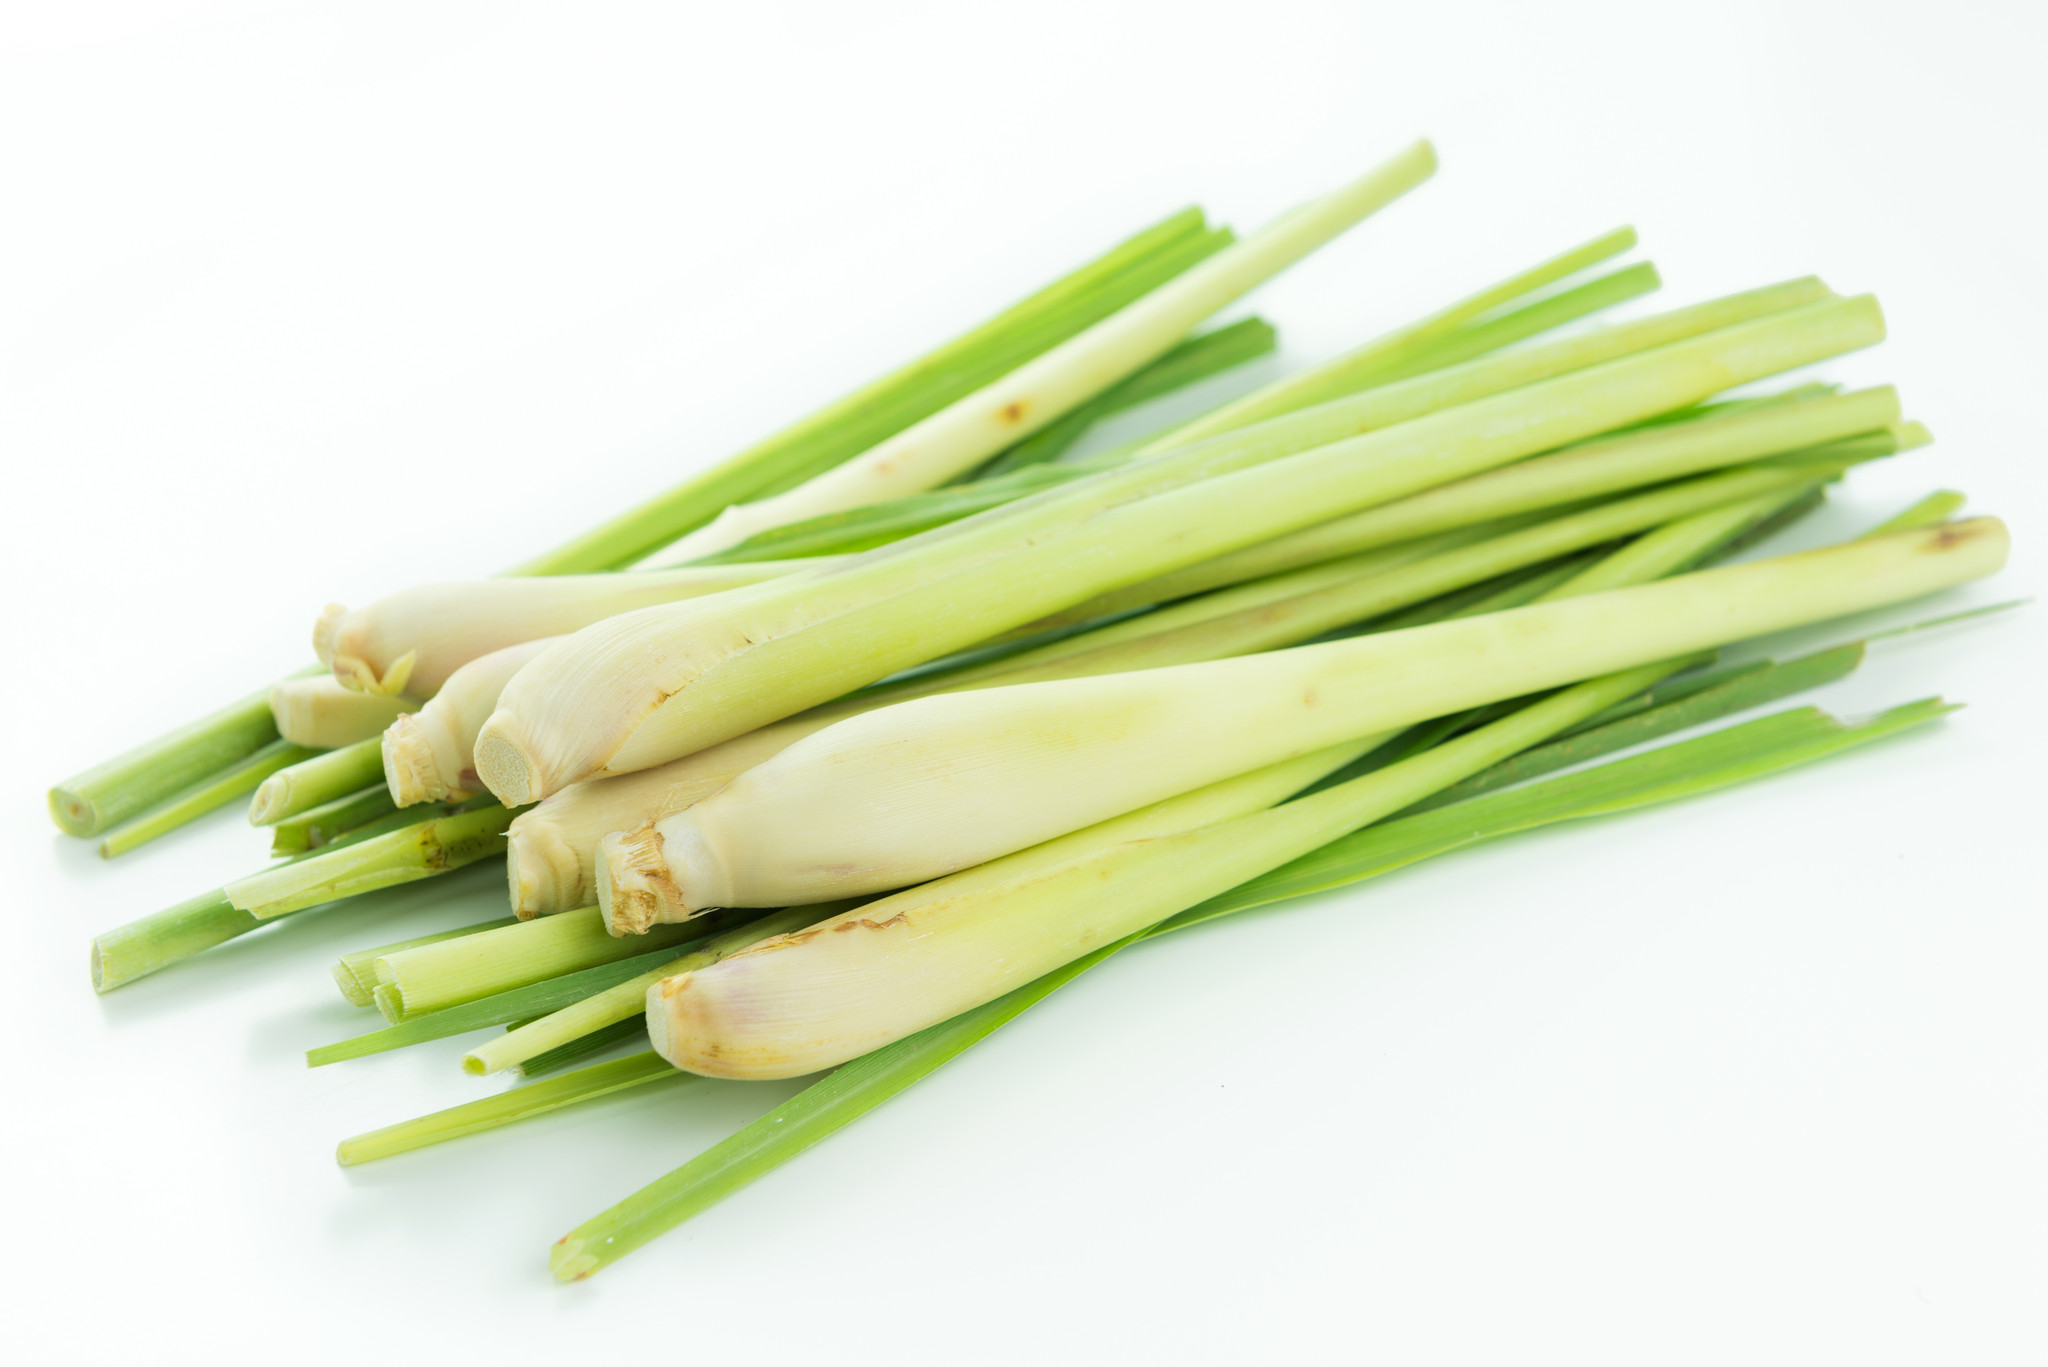 Lemongrass Stalk